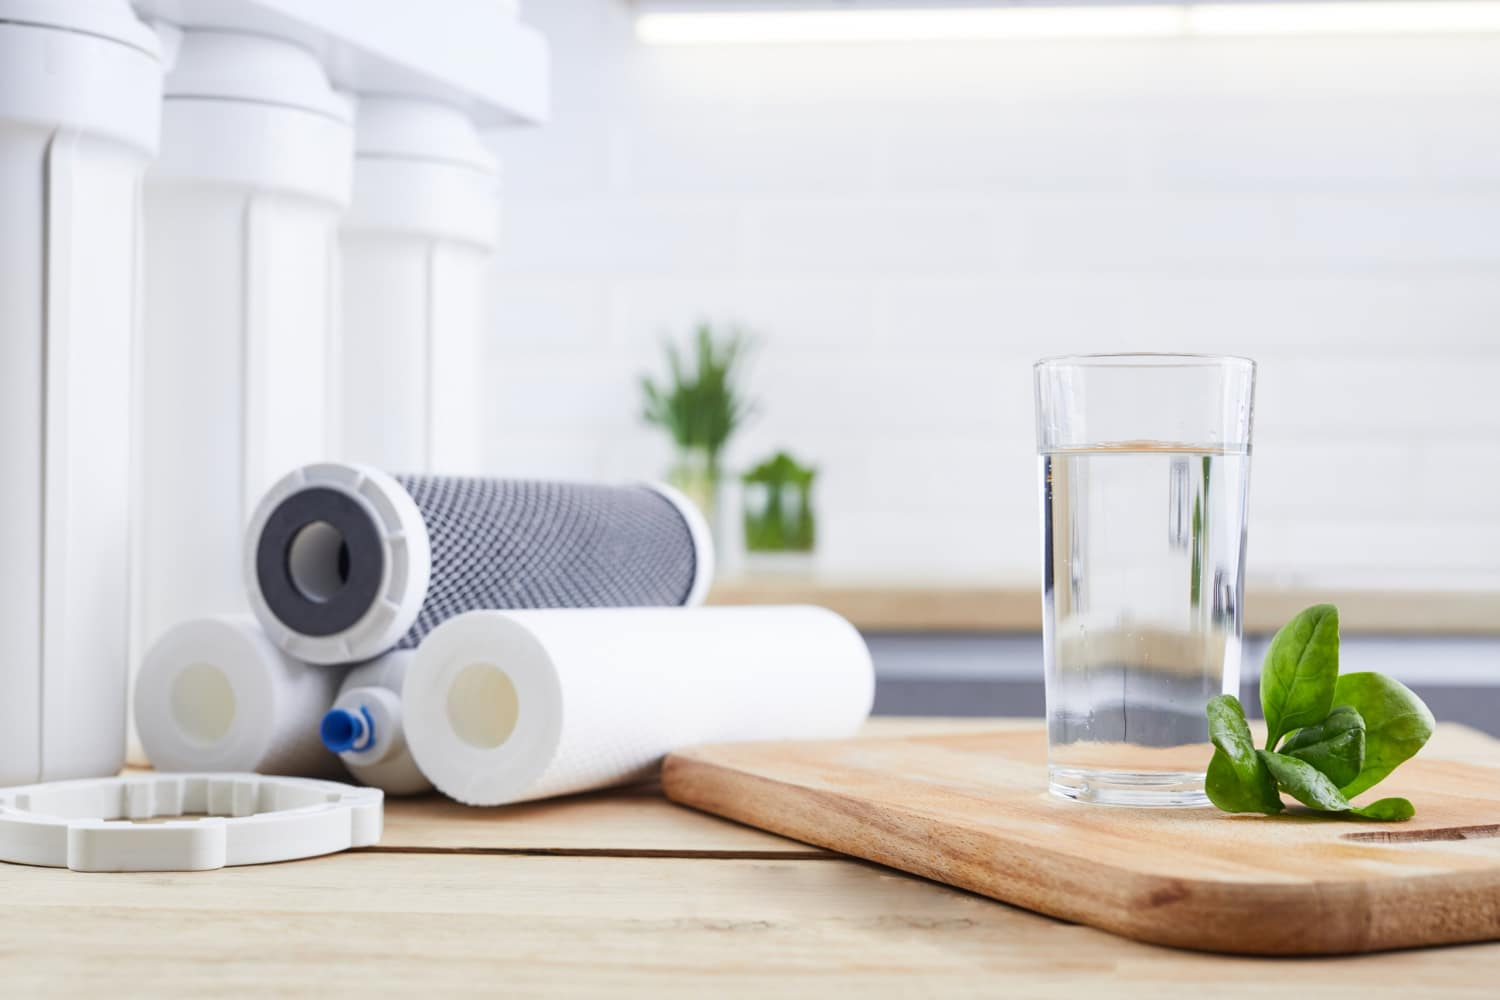 A glass of clean water with osmosis filter, green leaves and cartridges on wooden table in a kitchen interior. Concept Household filtration system.